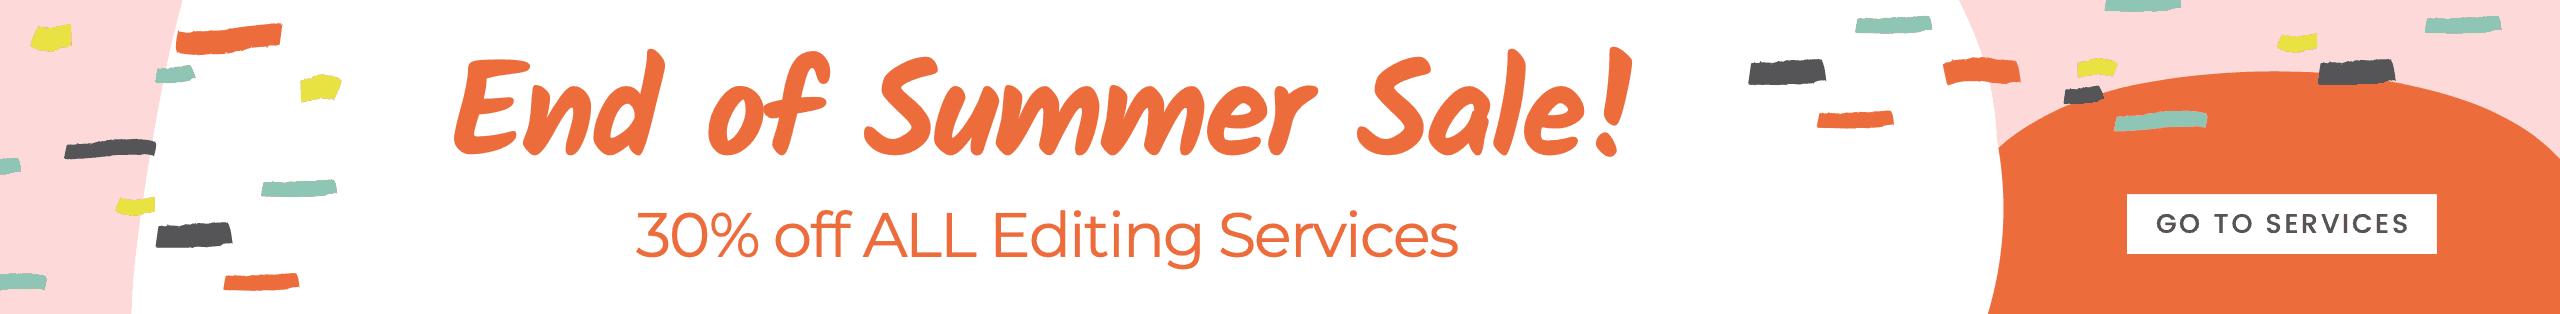 Promo_2019 End of Summer_30 All Services